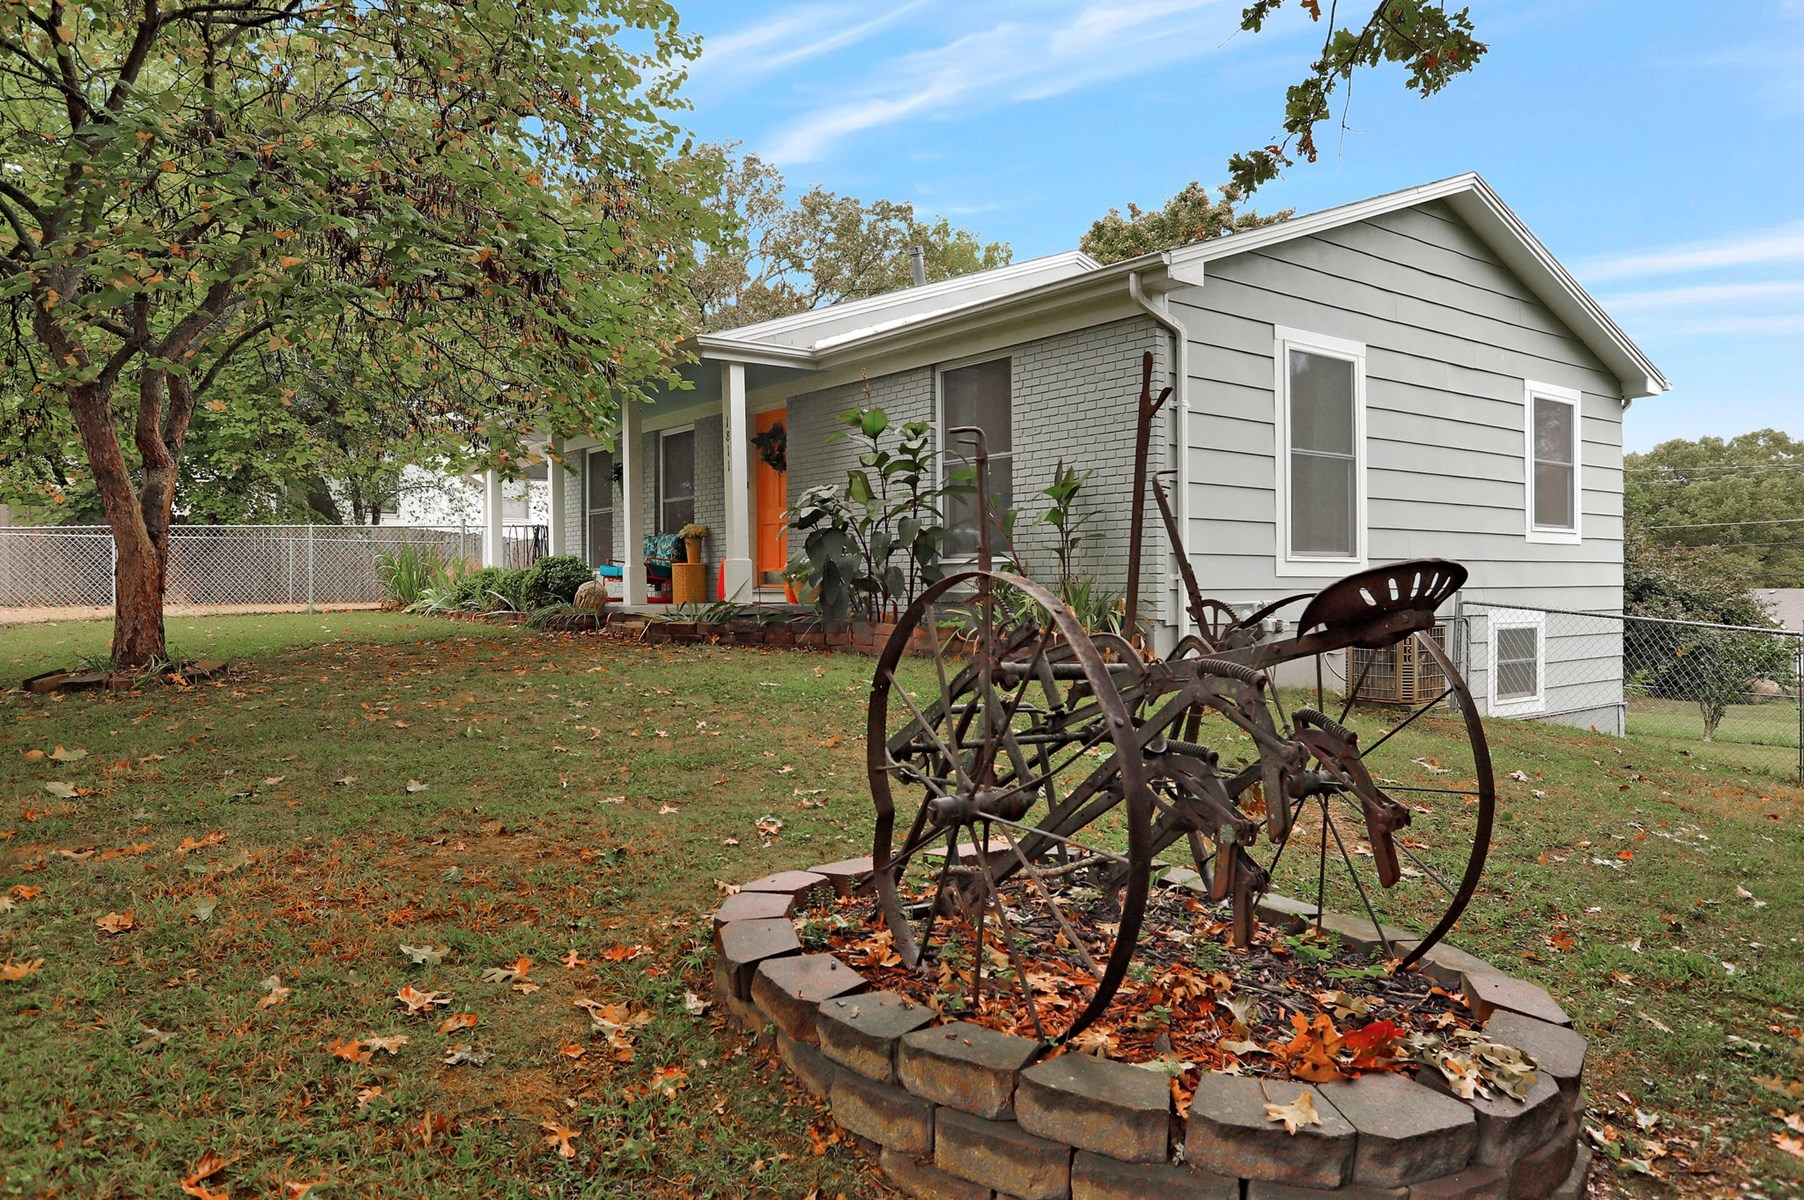 Home in West Plains, MO for Sale  -5 Bedrooms 2 BA in town